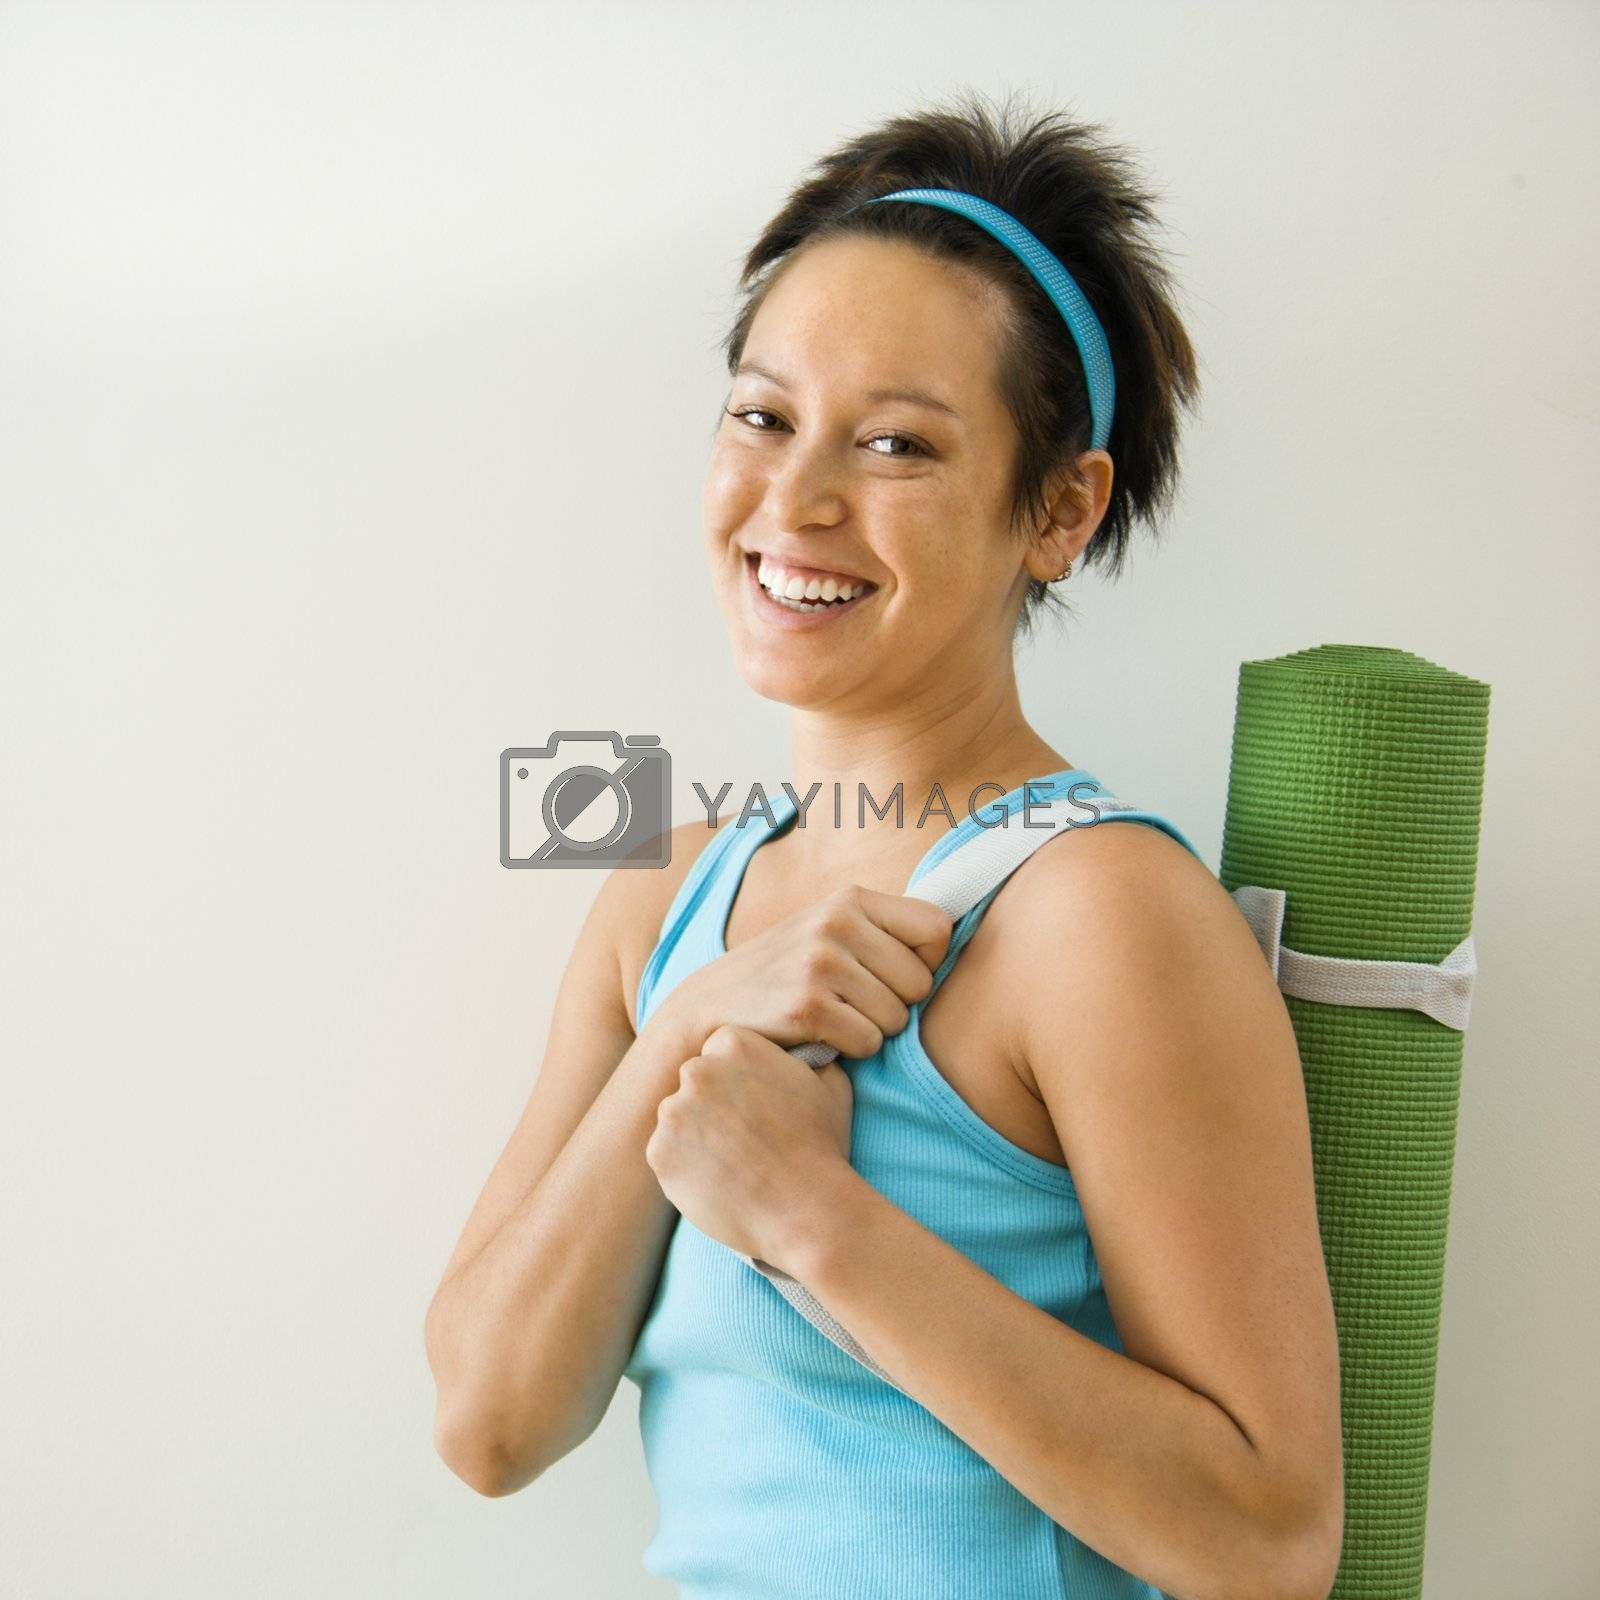 Young woman holding yoga mat and smiling.